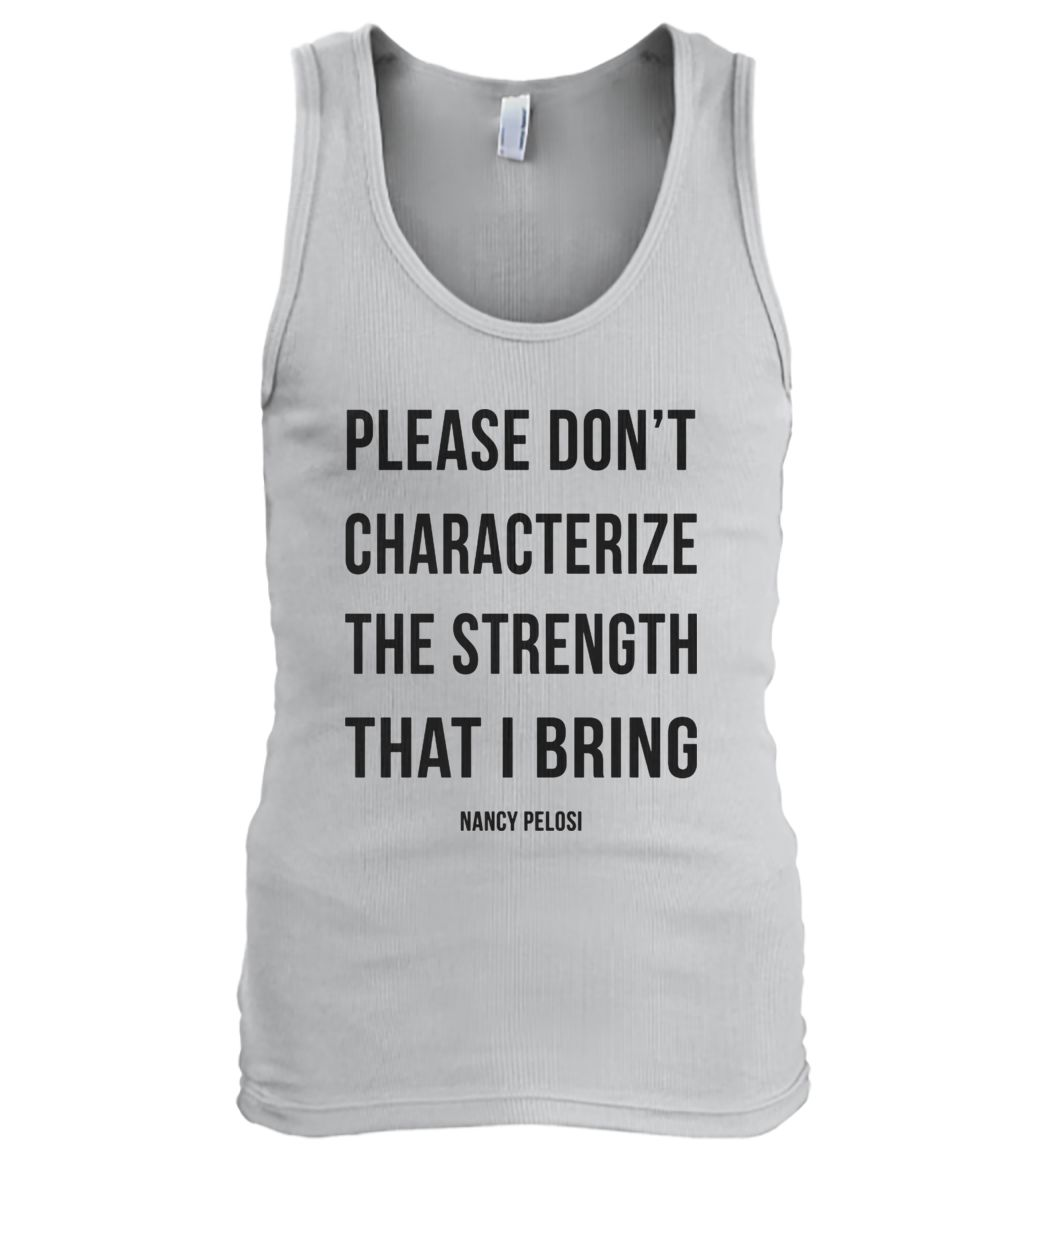 Please don't characterize the strength that I bring men's tank top